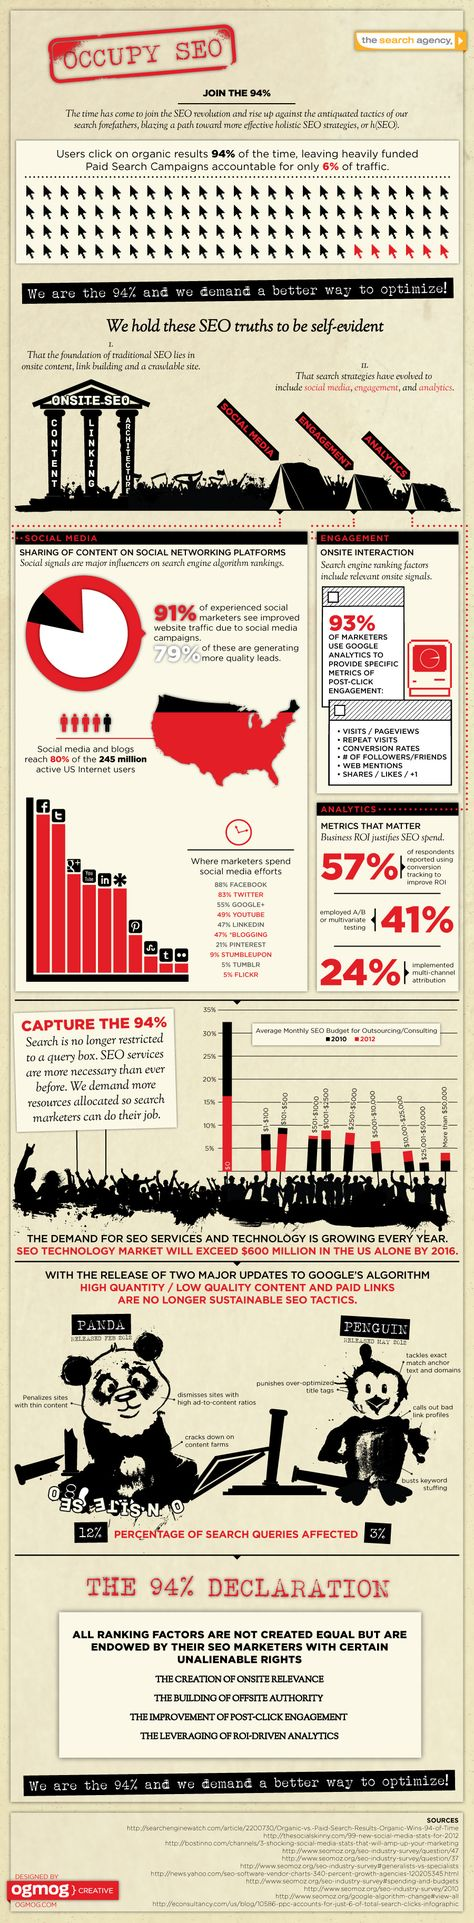 The State of SEO: How to Join the 94% (Infographic)